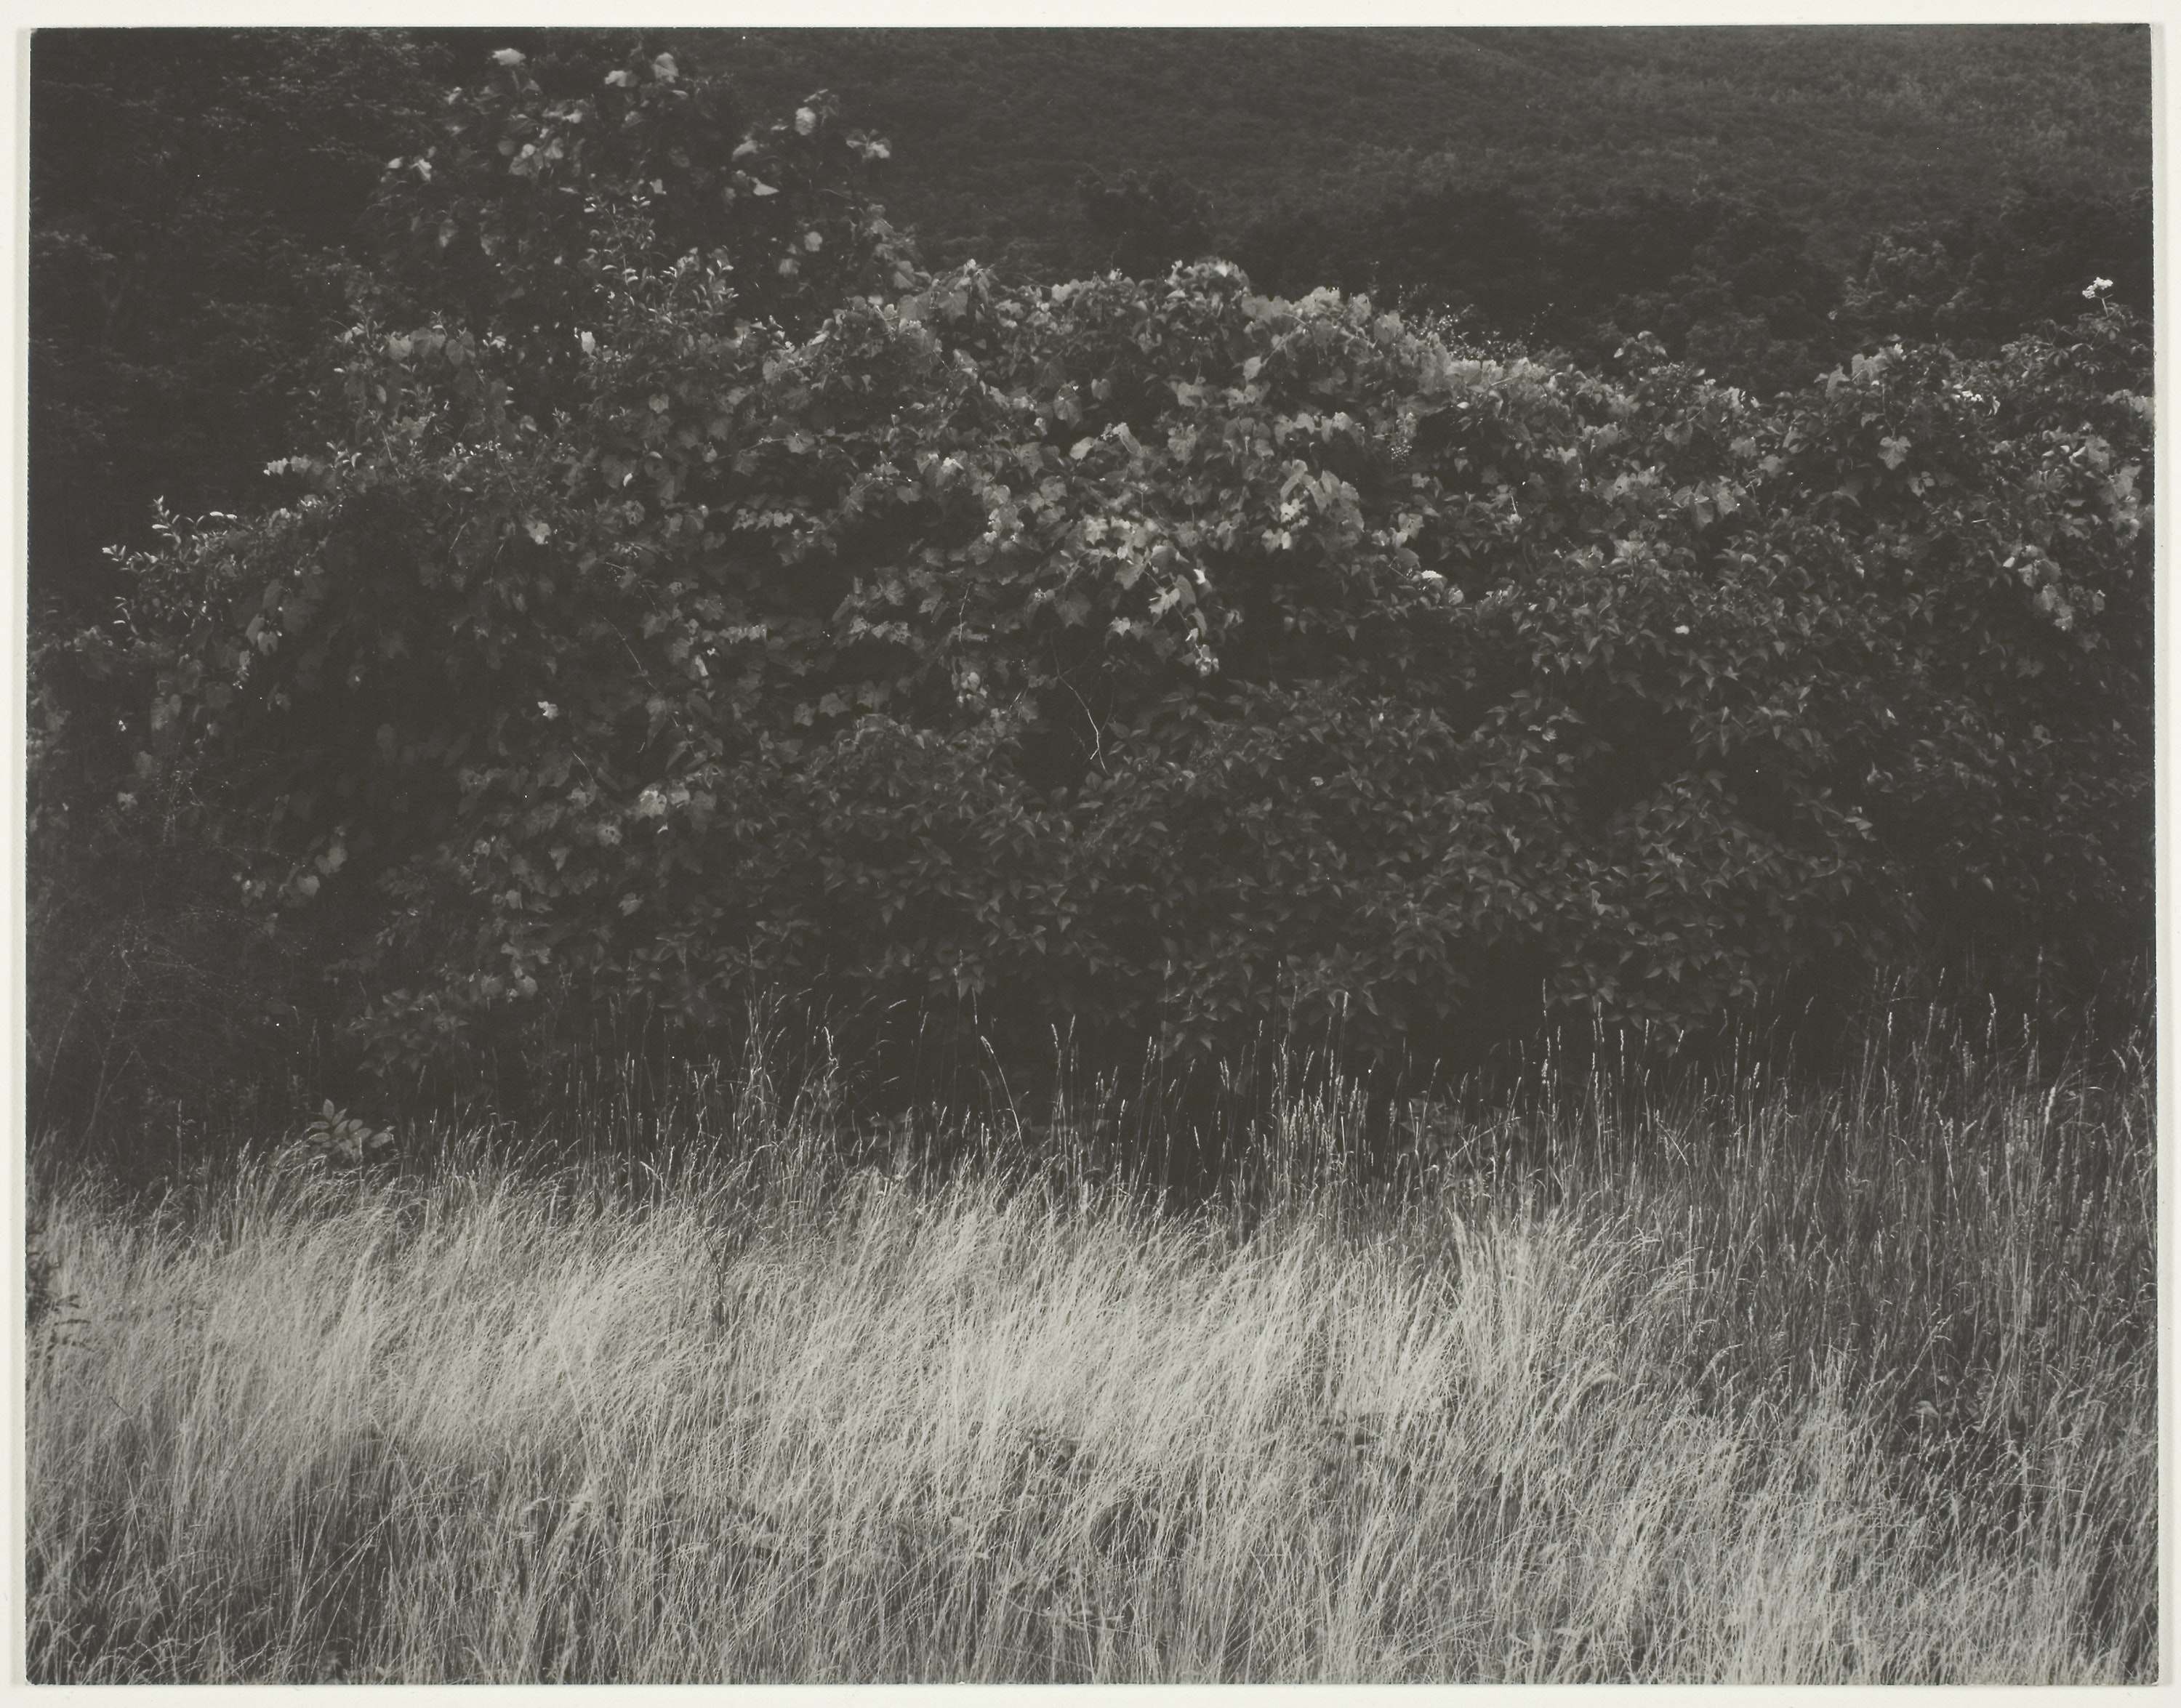 Hedge And Grasses, Lake George, by Alfred Stieglitz